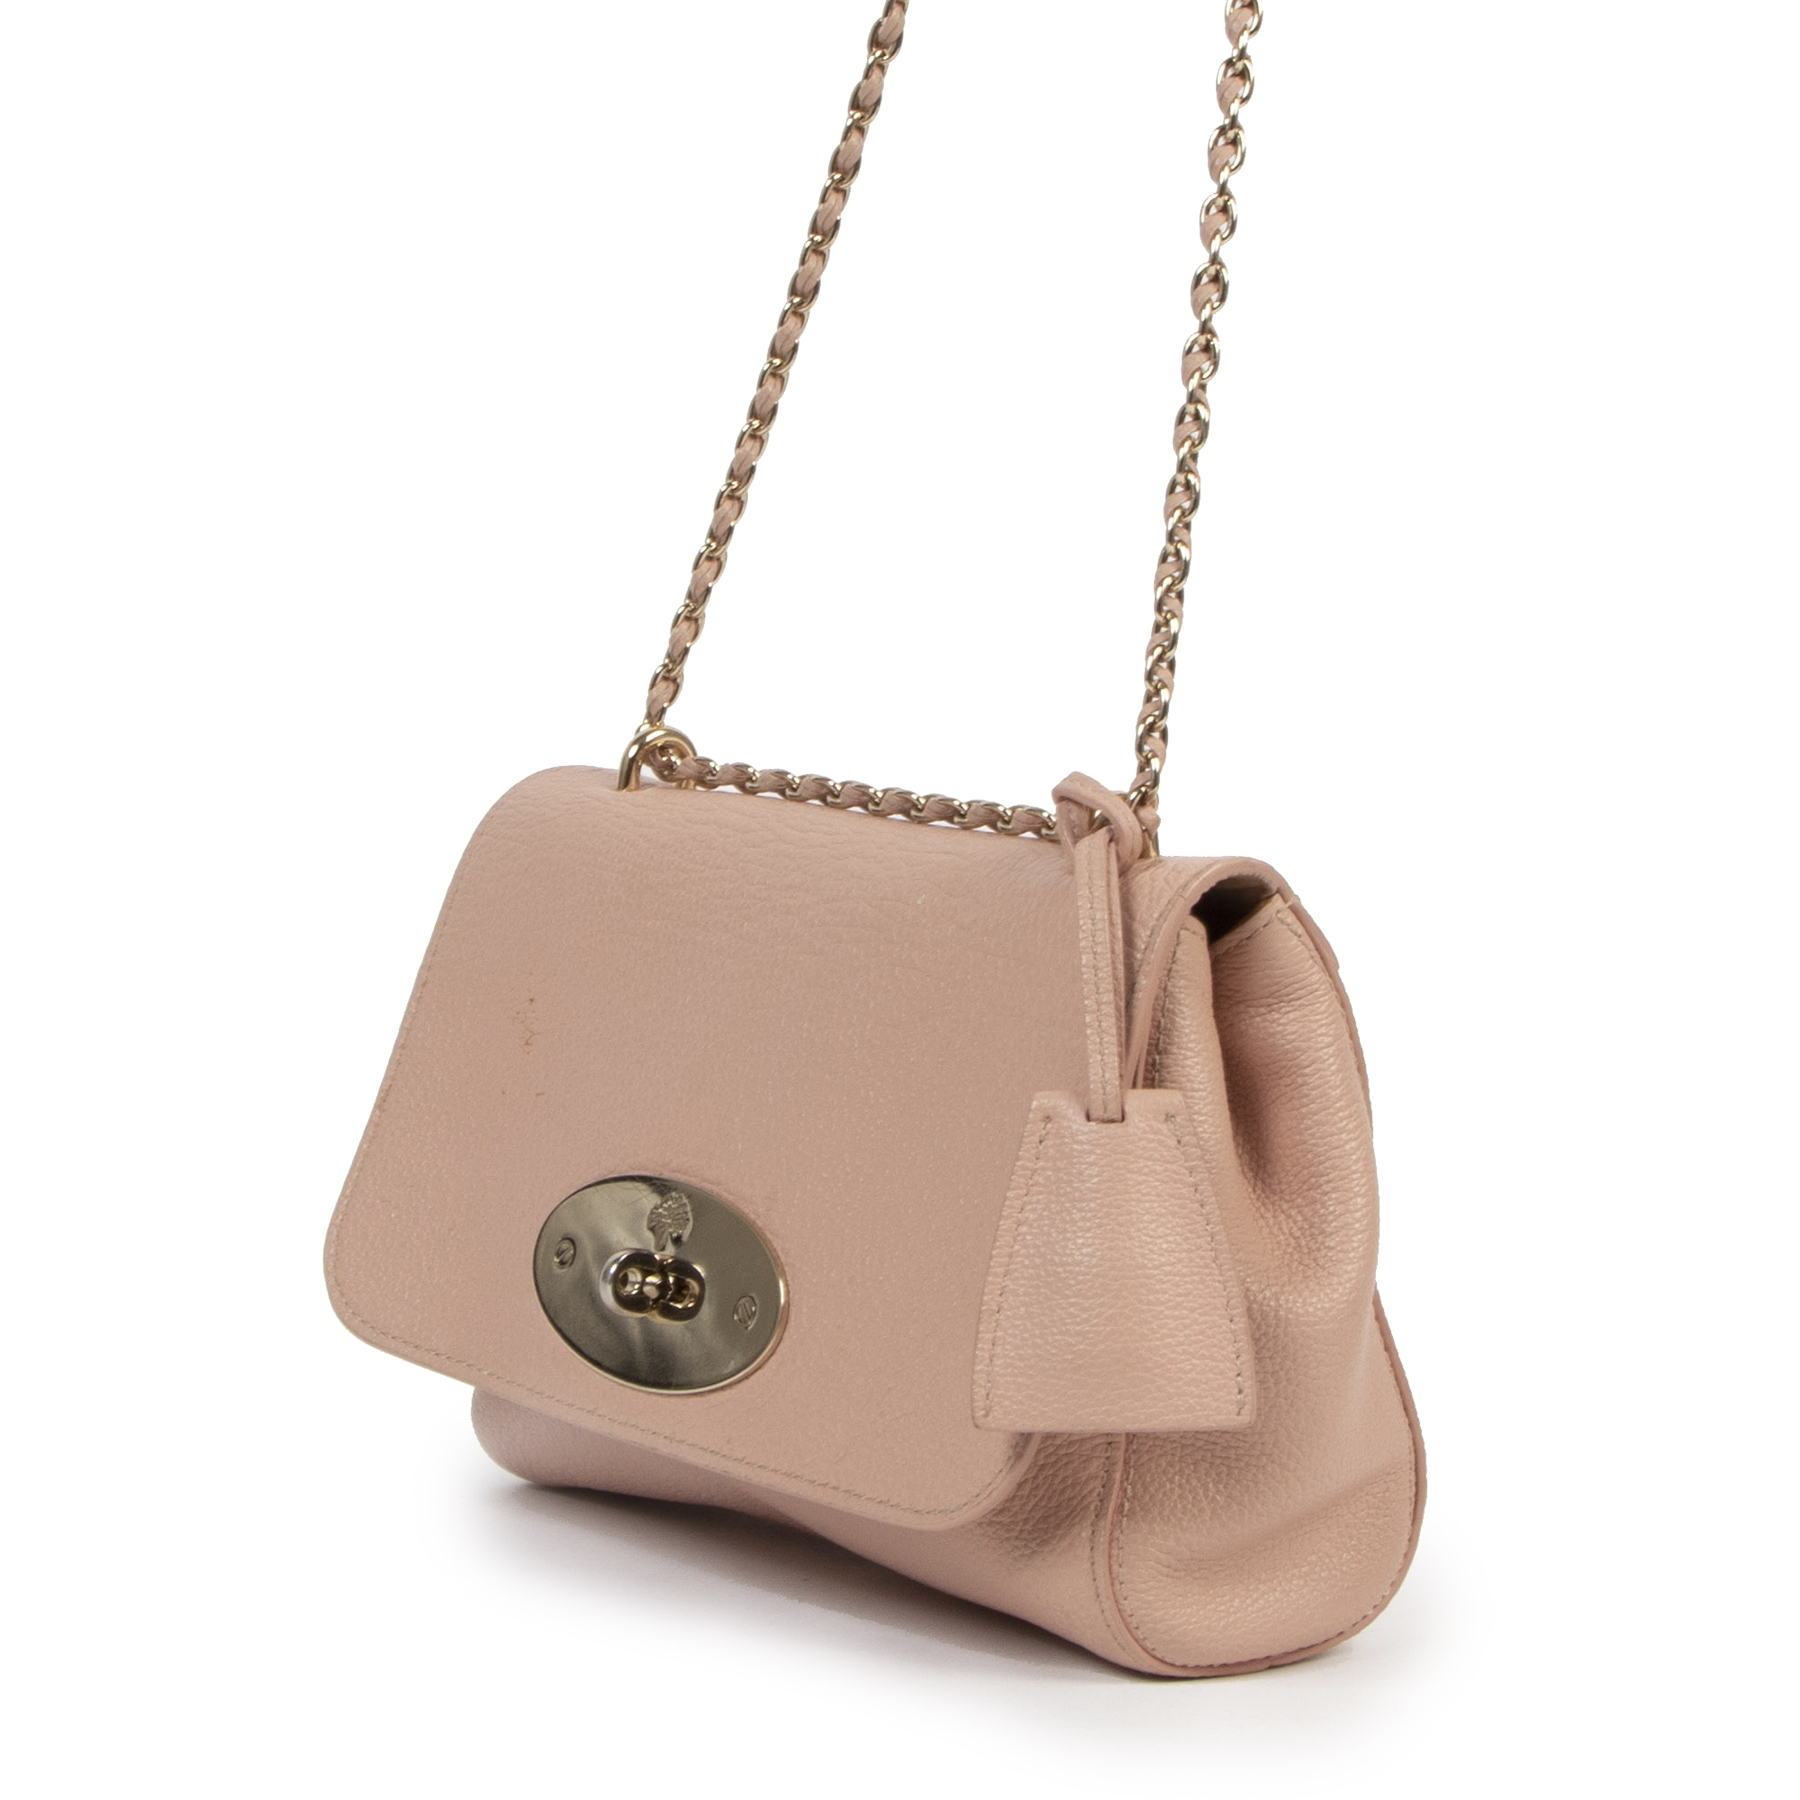 koop veilig online Mulberry Pink Small Lily shoulder bag